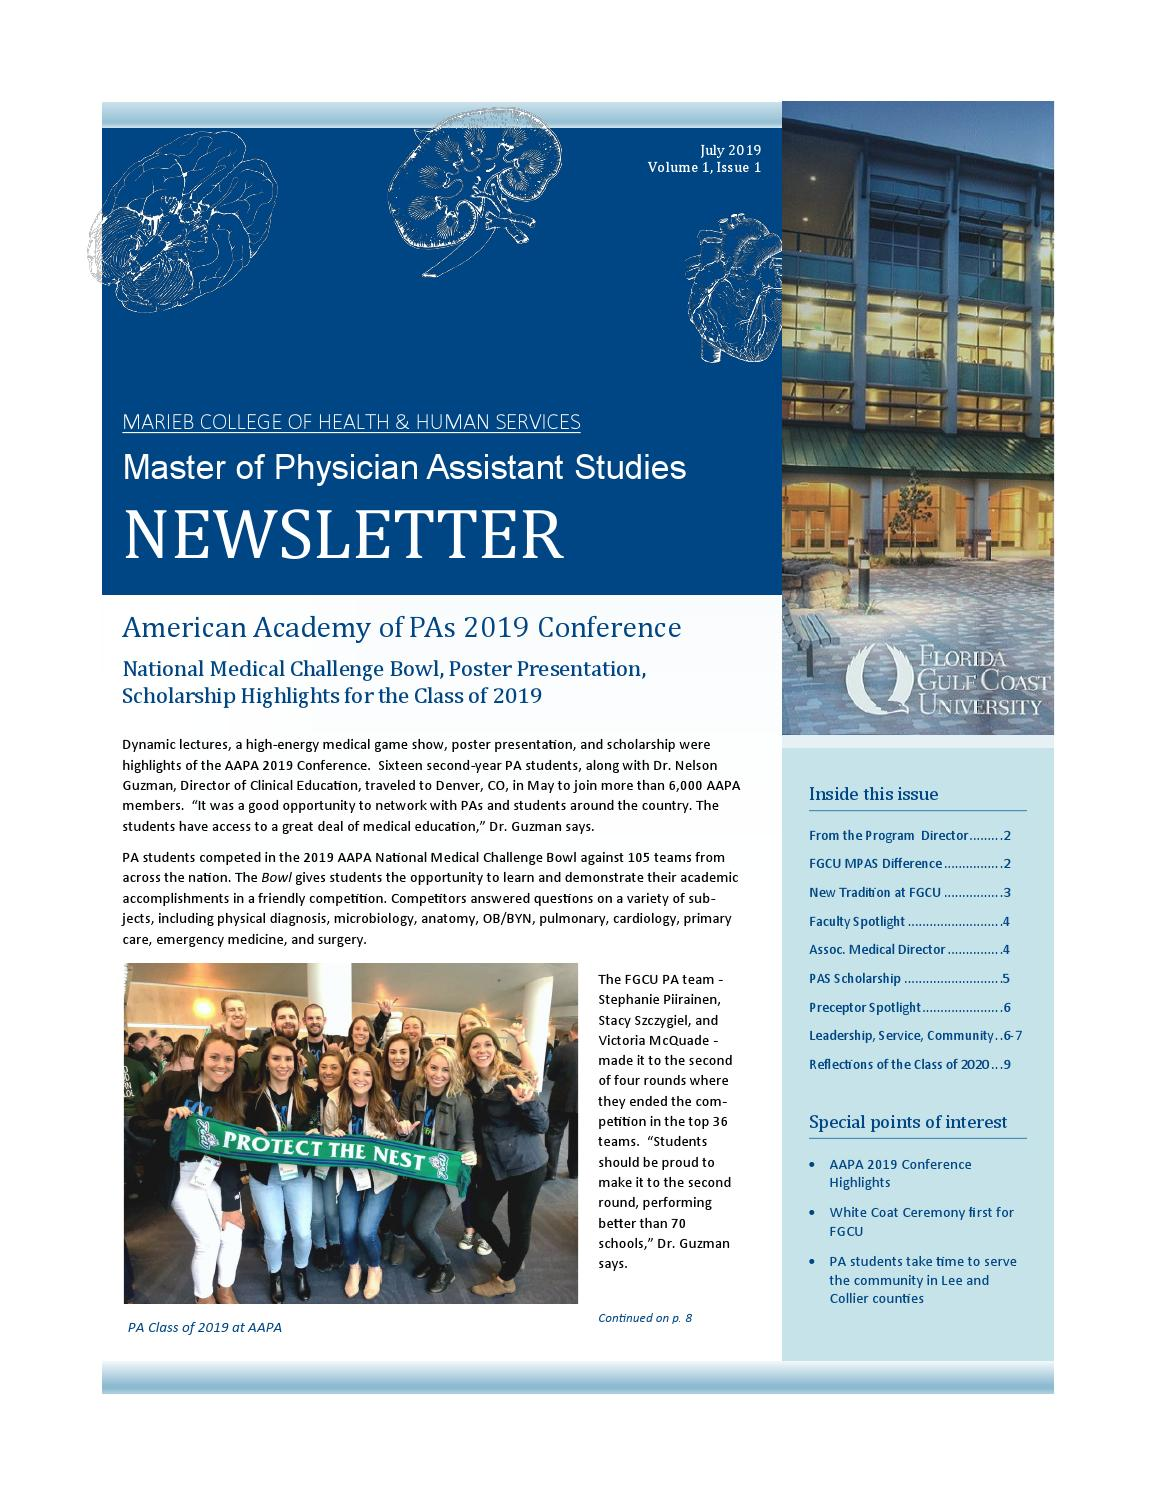 Master of Physician Assistant Studies - July 2019 Newsletter